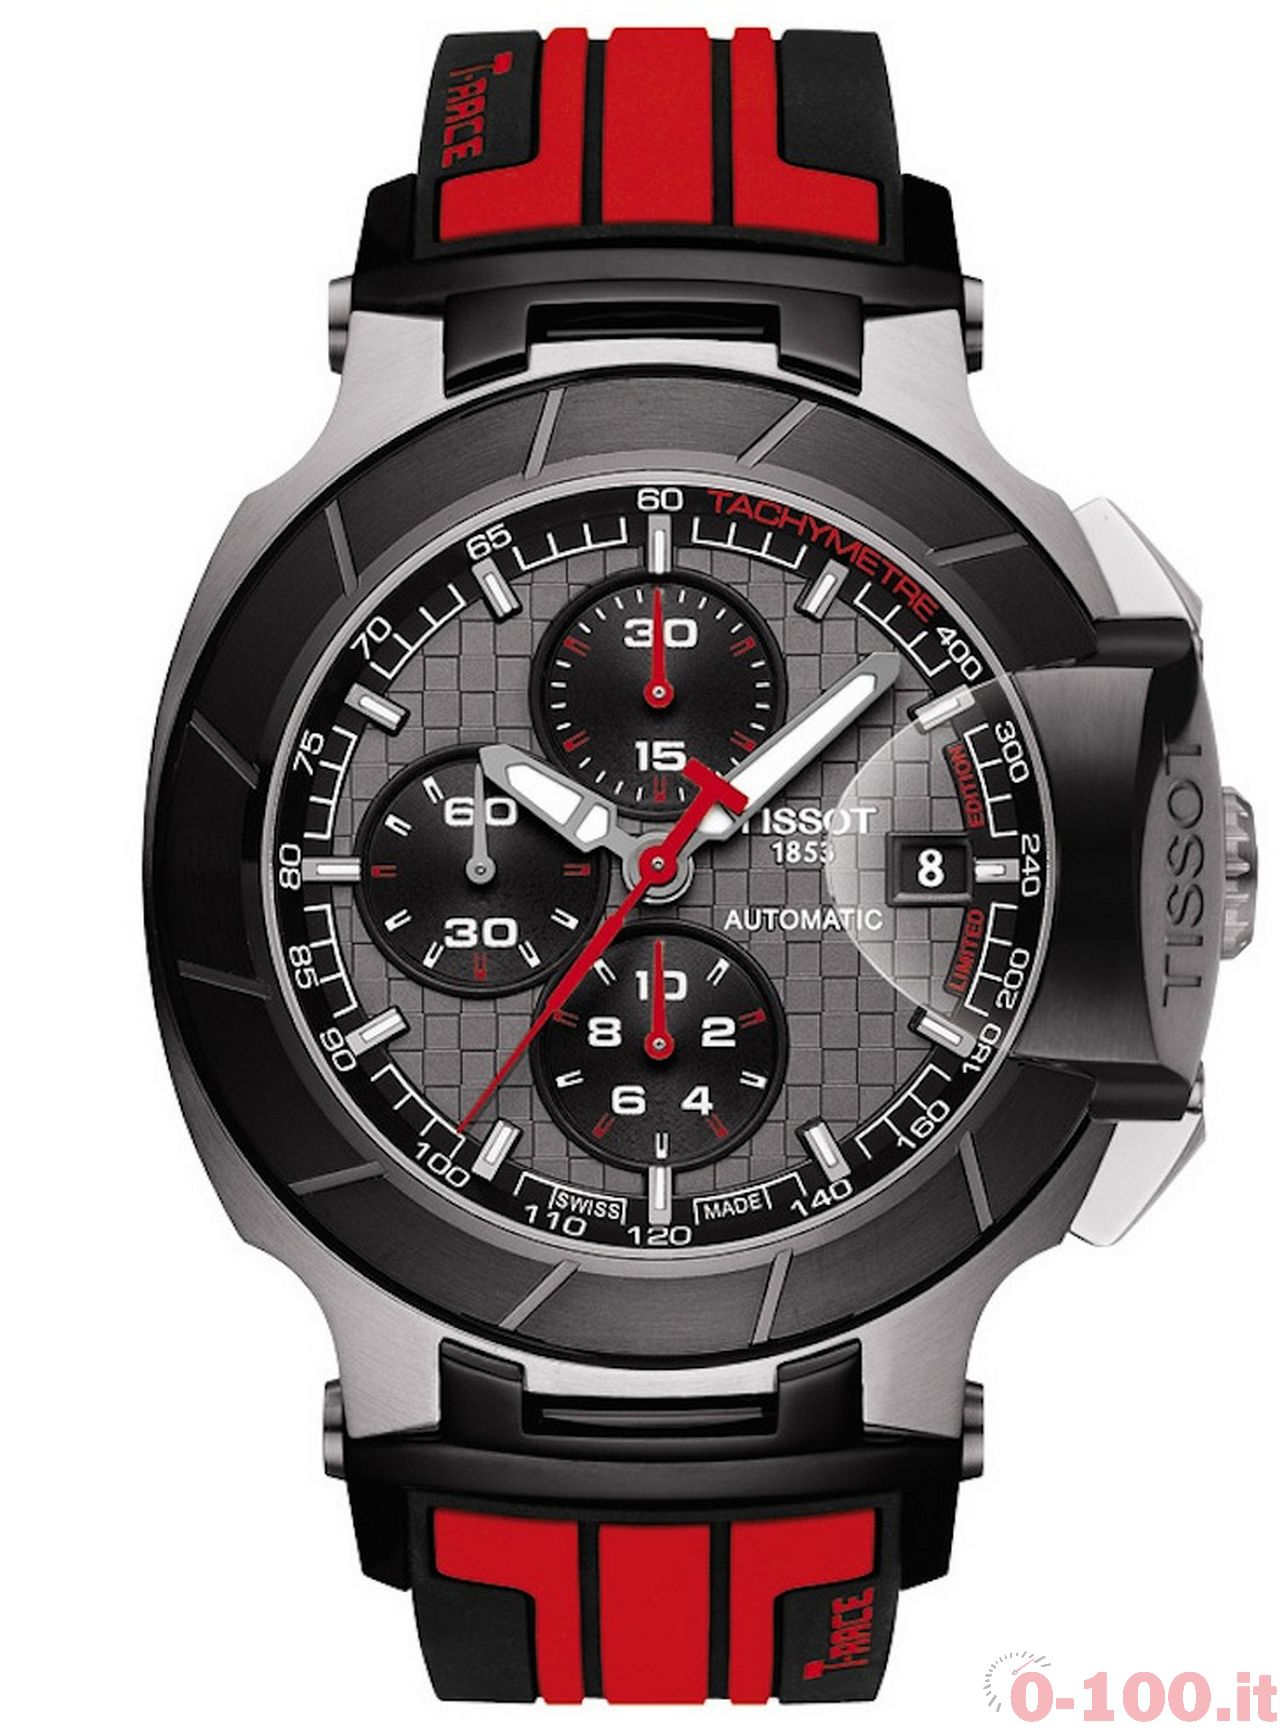 Baselworld 2014: Tissot T-Race MotoGP Automatic Chronograph Limited Edition 2014 - 0-100.it